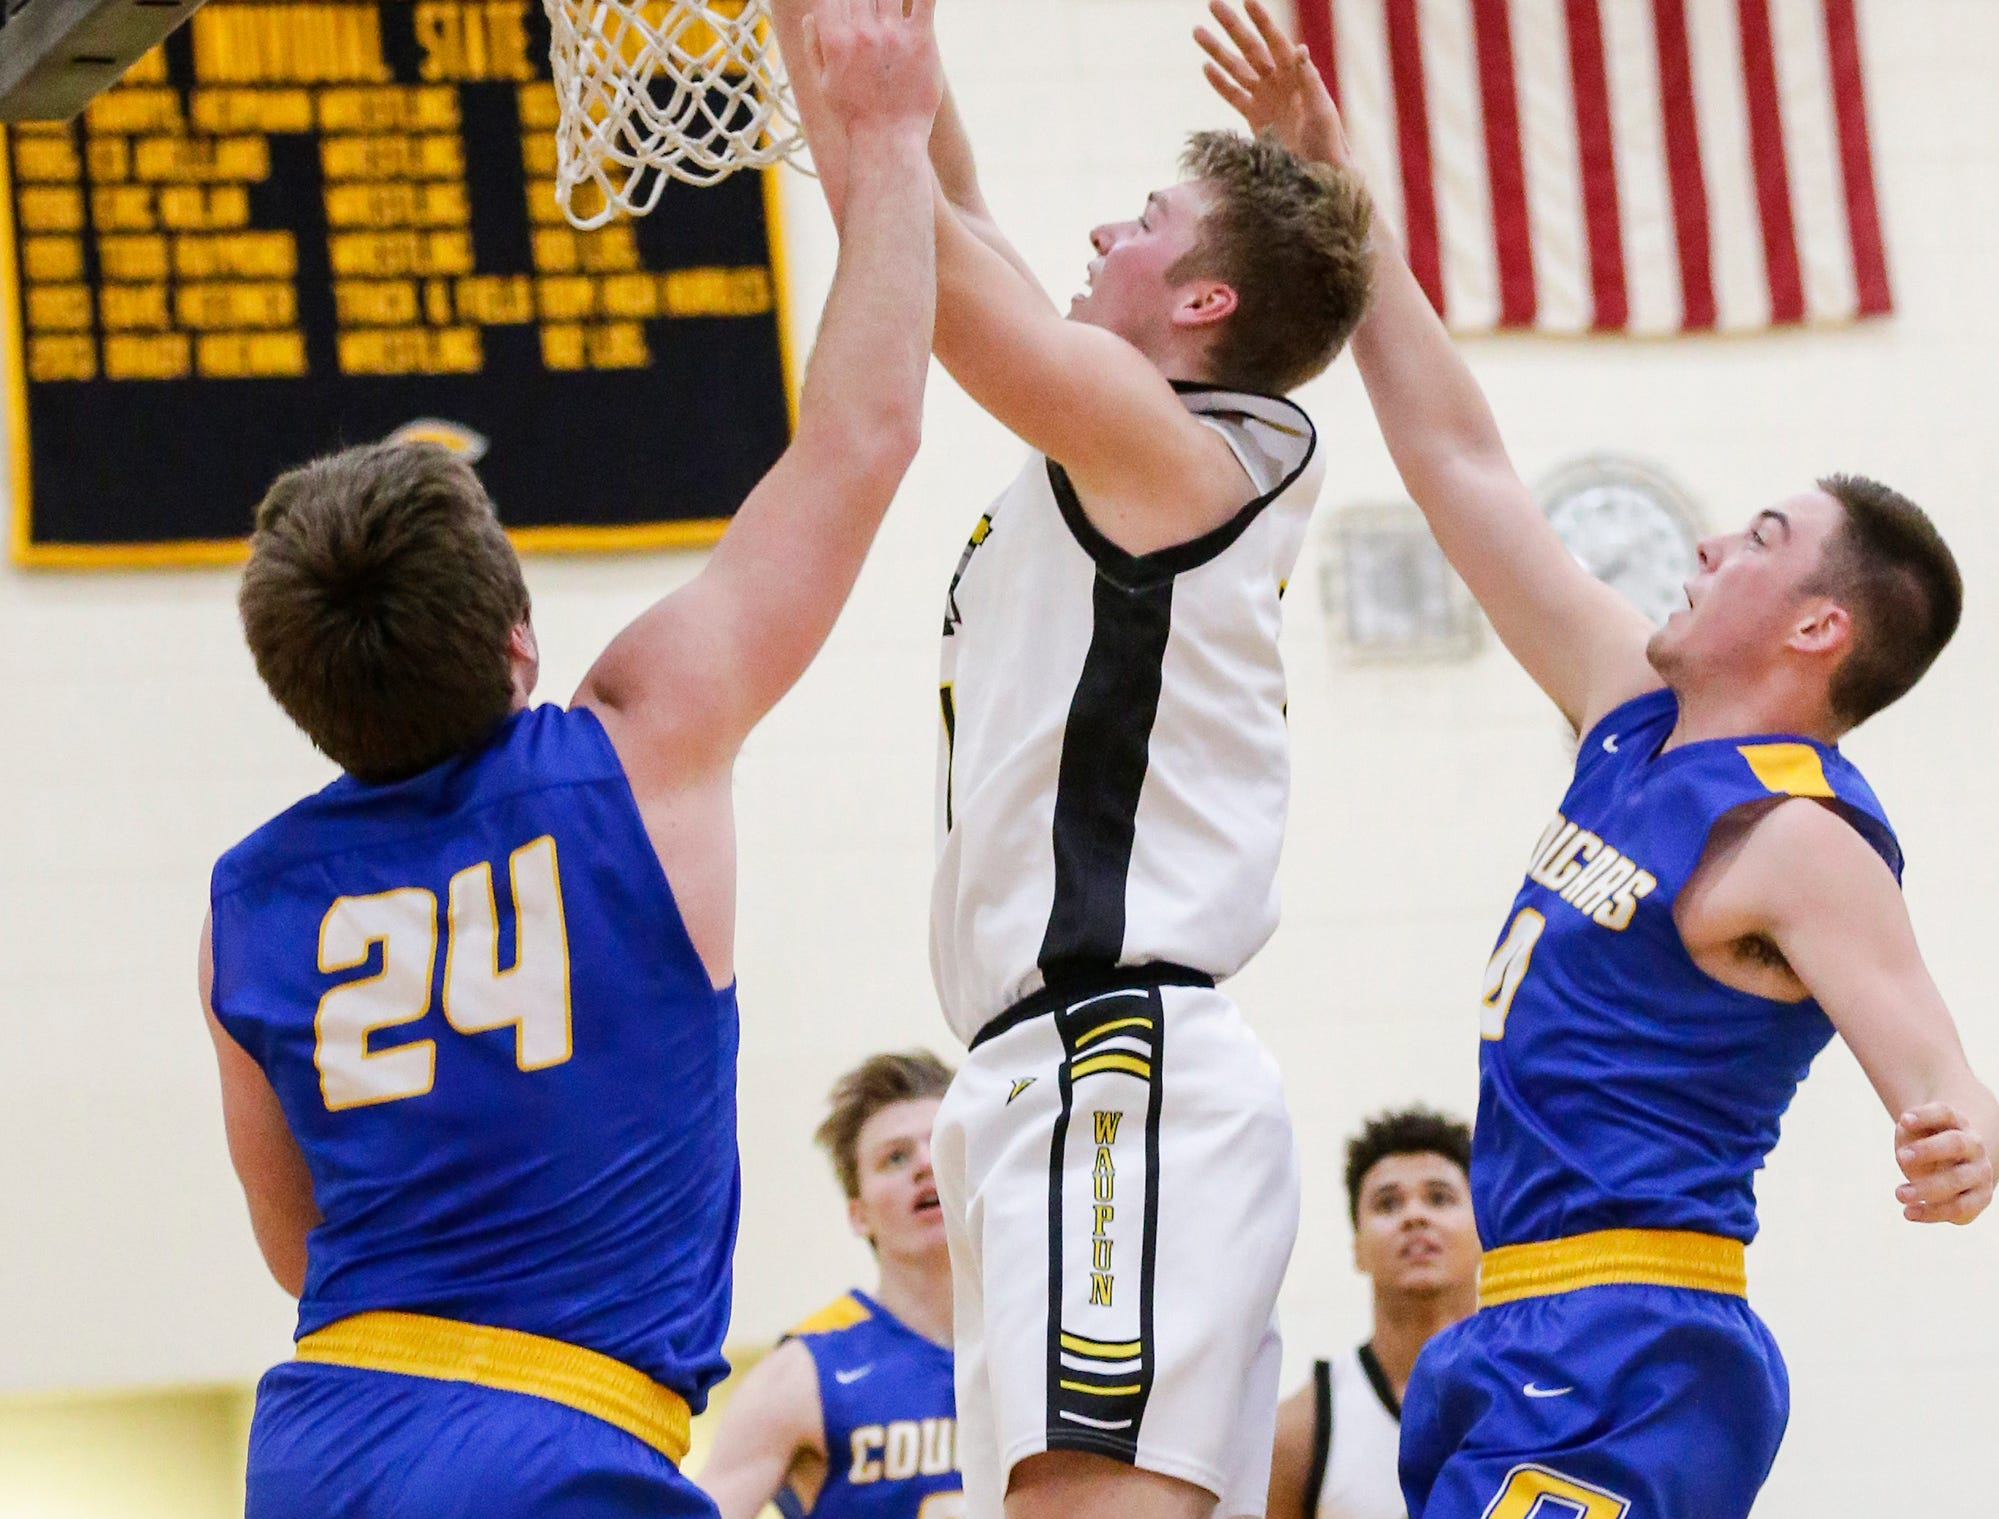 Waupun High School boys basketball's Marcus Domask goes up for a basket between Campbellsport High School's Nicholas Narges and Kade Walsh during their game Friday, December 14, 2018 in Waupun. Waupun won the game 64-33. Doug Raflik/USA TODAY NETWORK-Wisconsin